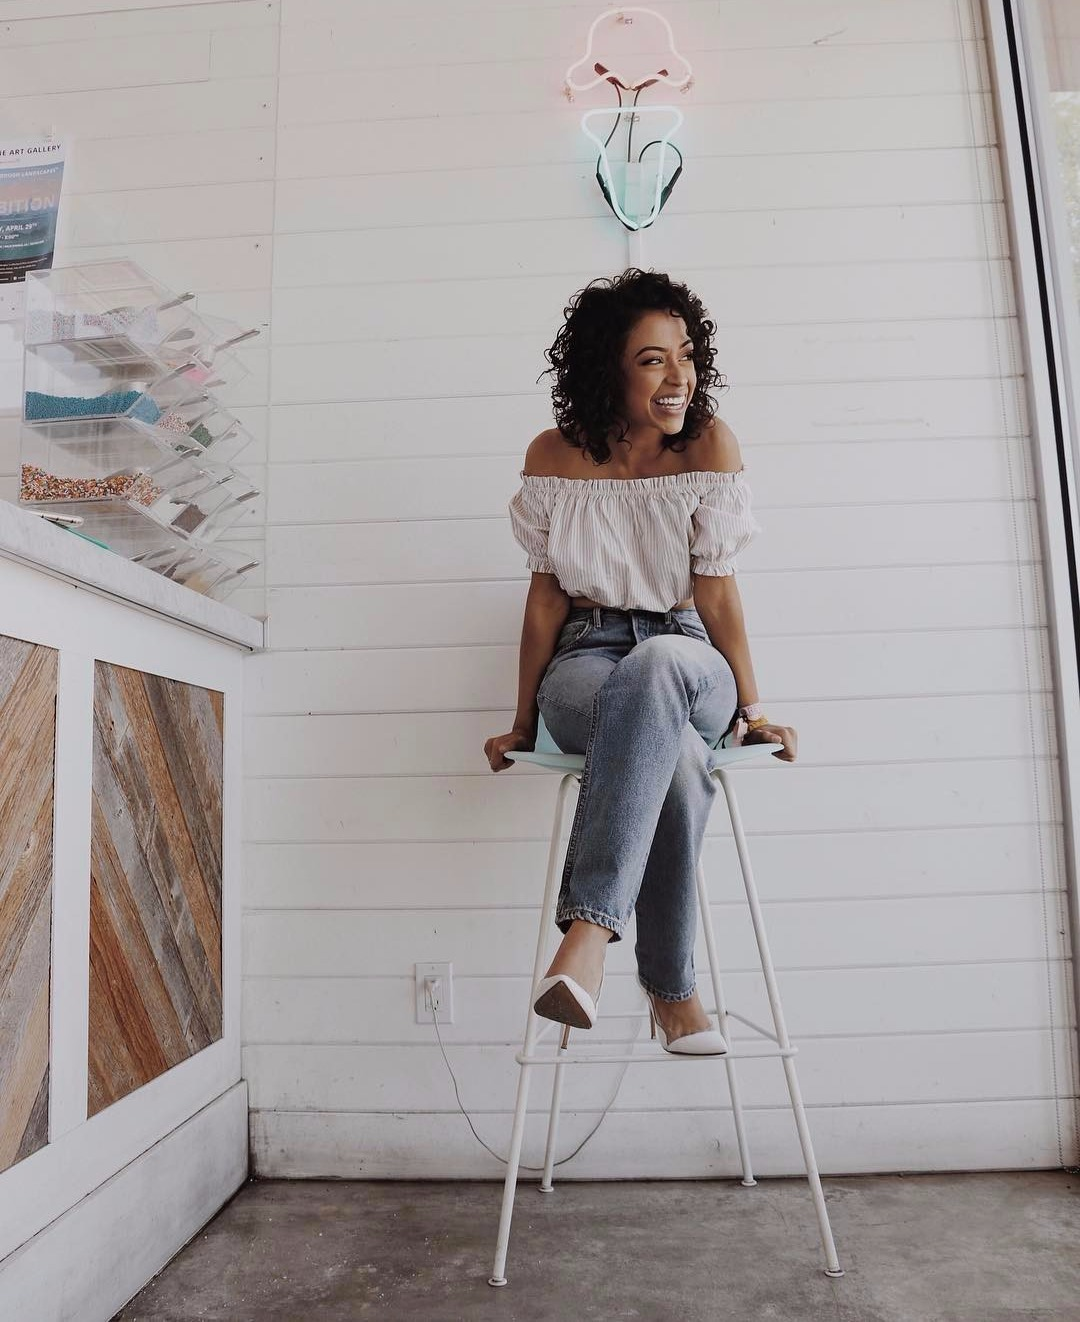 Liza Koshy sitting on a bar stool, there's a neon light above her head